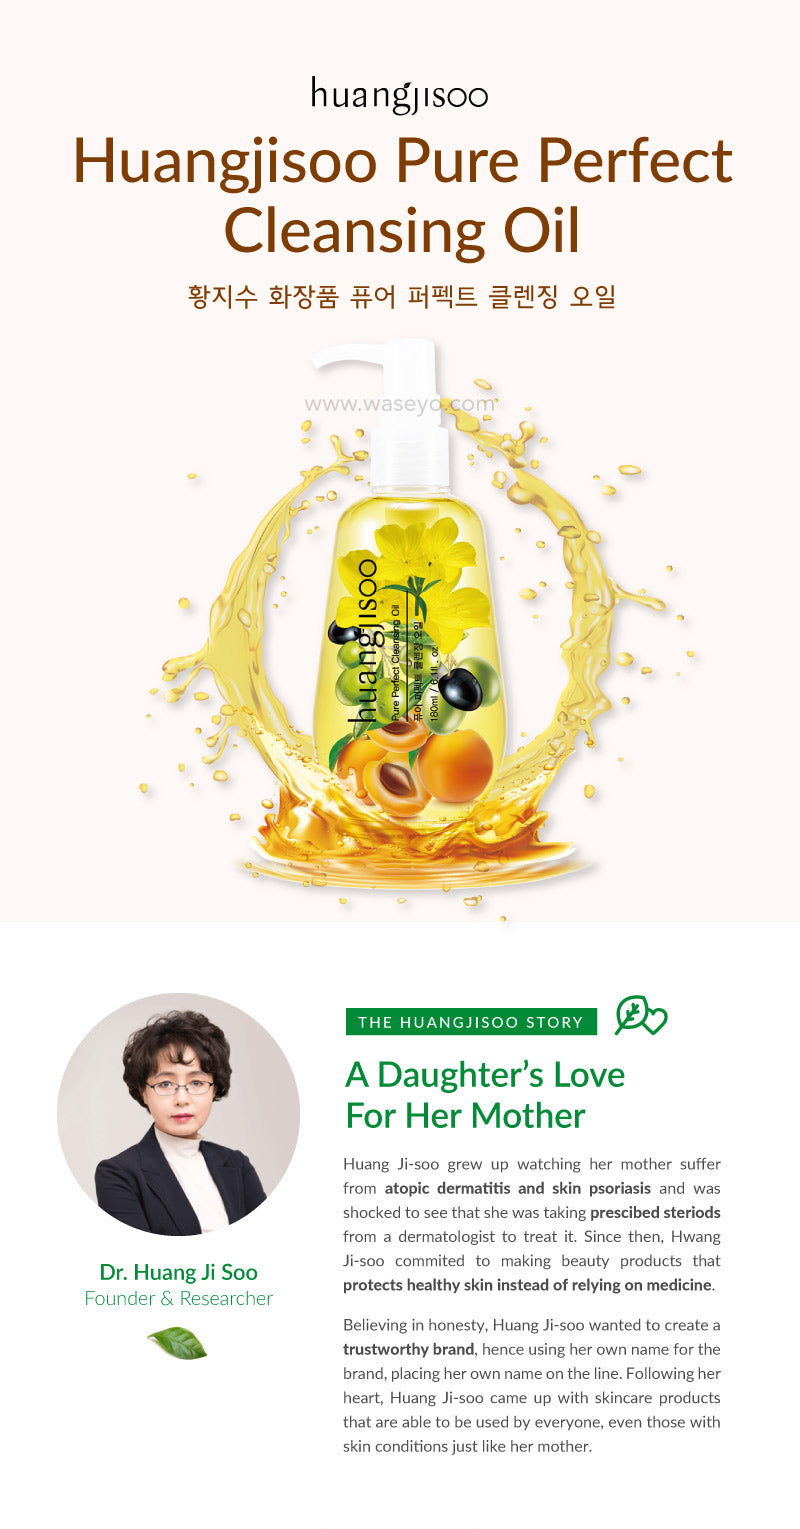 Introducing Huangjisoo Pure Perfect Oil, made with organic ingredients that is super gentle on your skin. The brand is created by Ms Huang Ji Soo, out of love for her mother when she was suffering from psoriasis. As Ms Huang Ji Soo was unable to find a product in the market that was suitable, she set out to create her own range of products that were suitable for her mother and everyone who is suffering from sensitive skin!